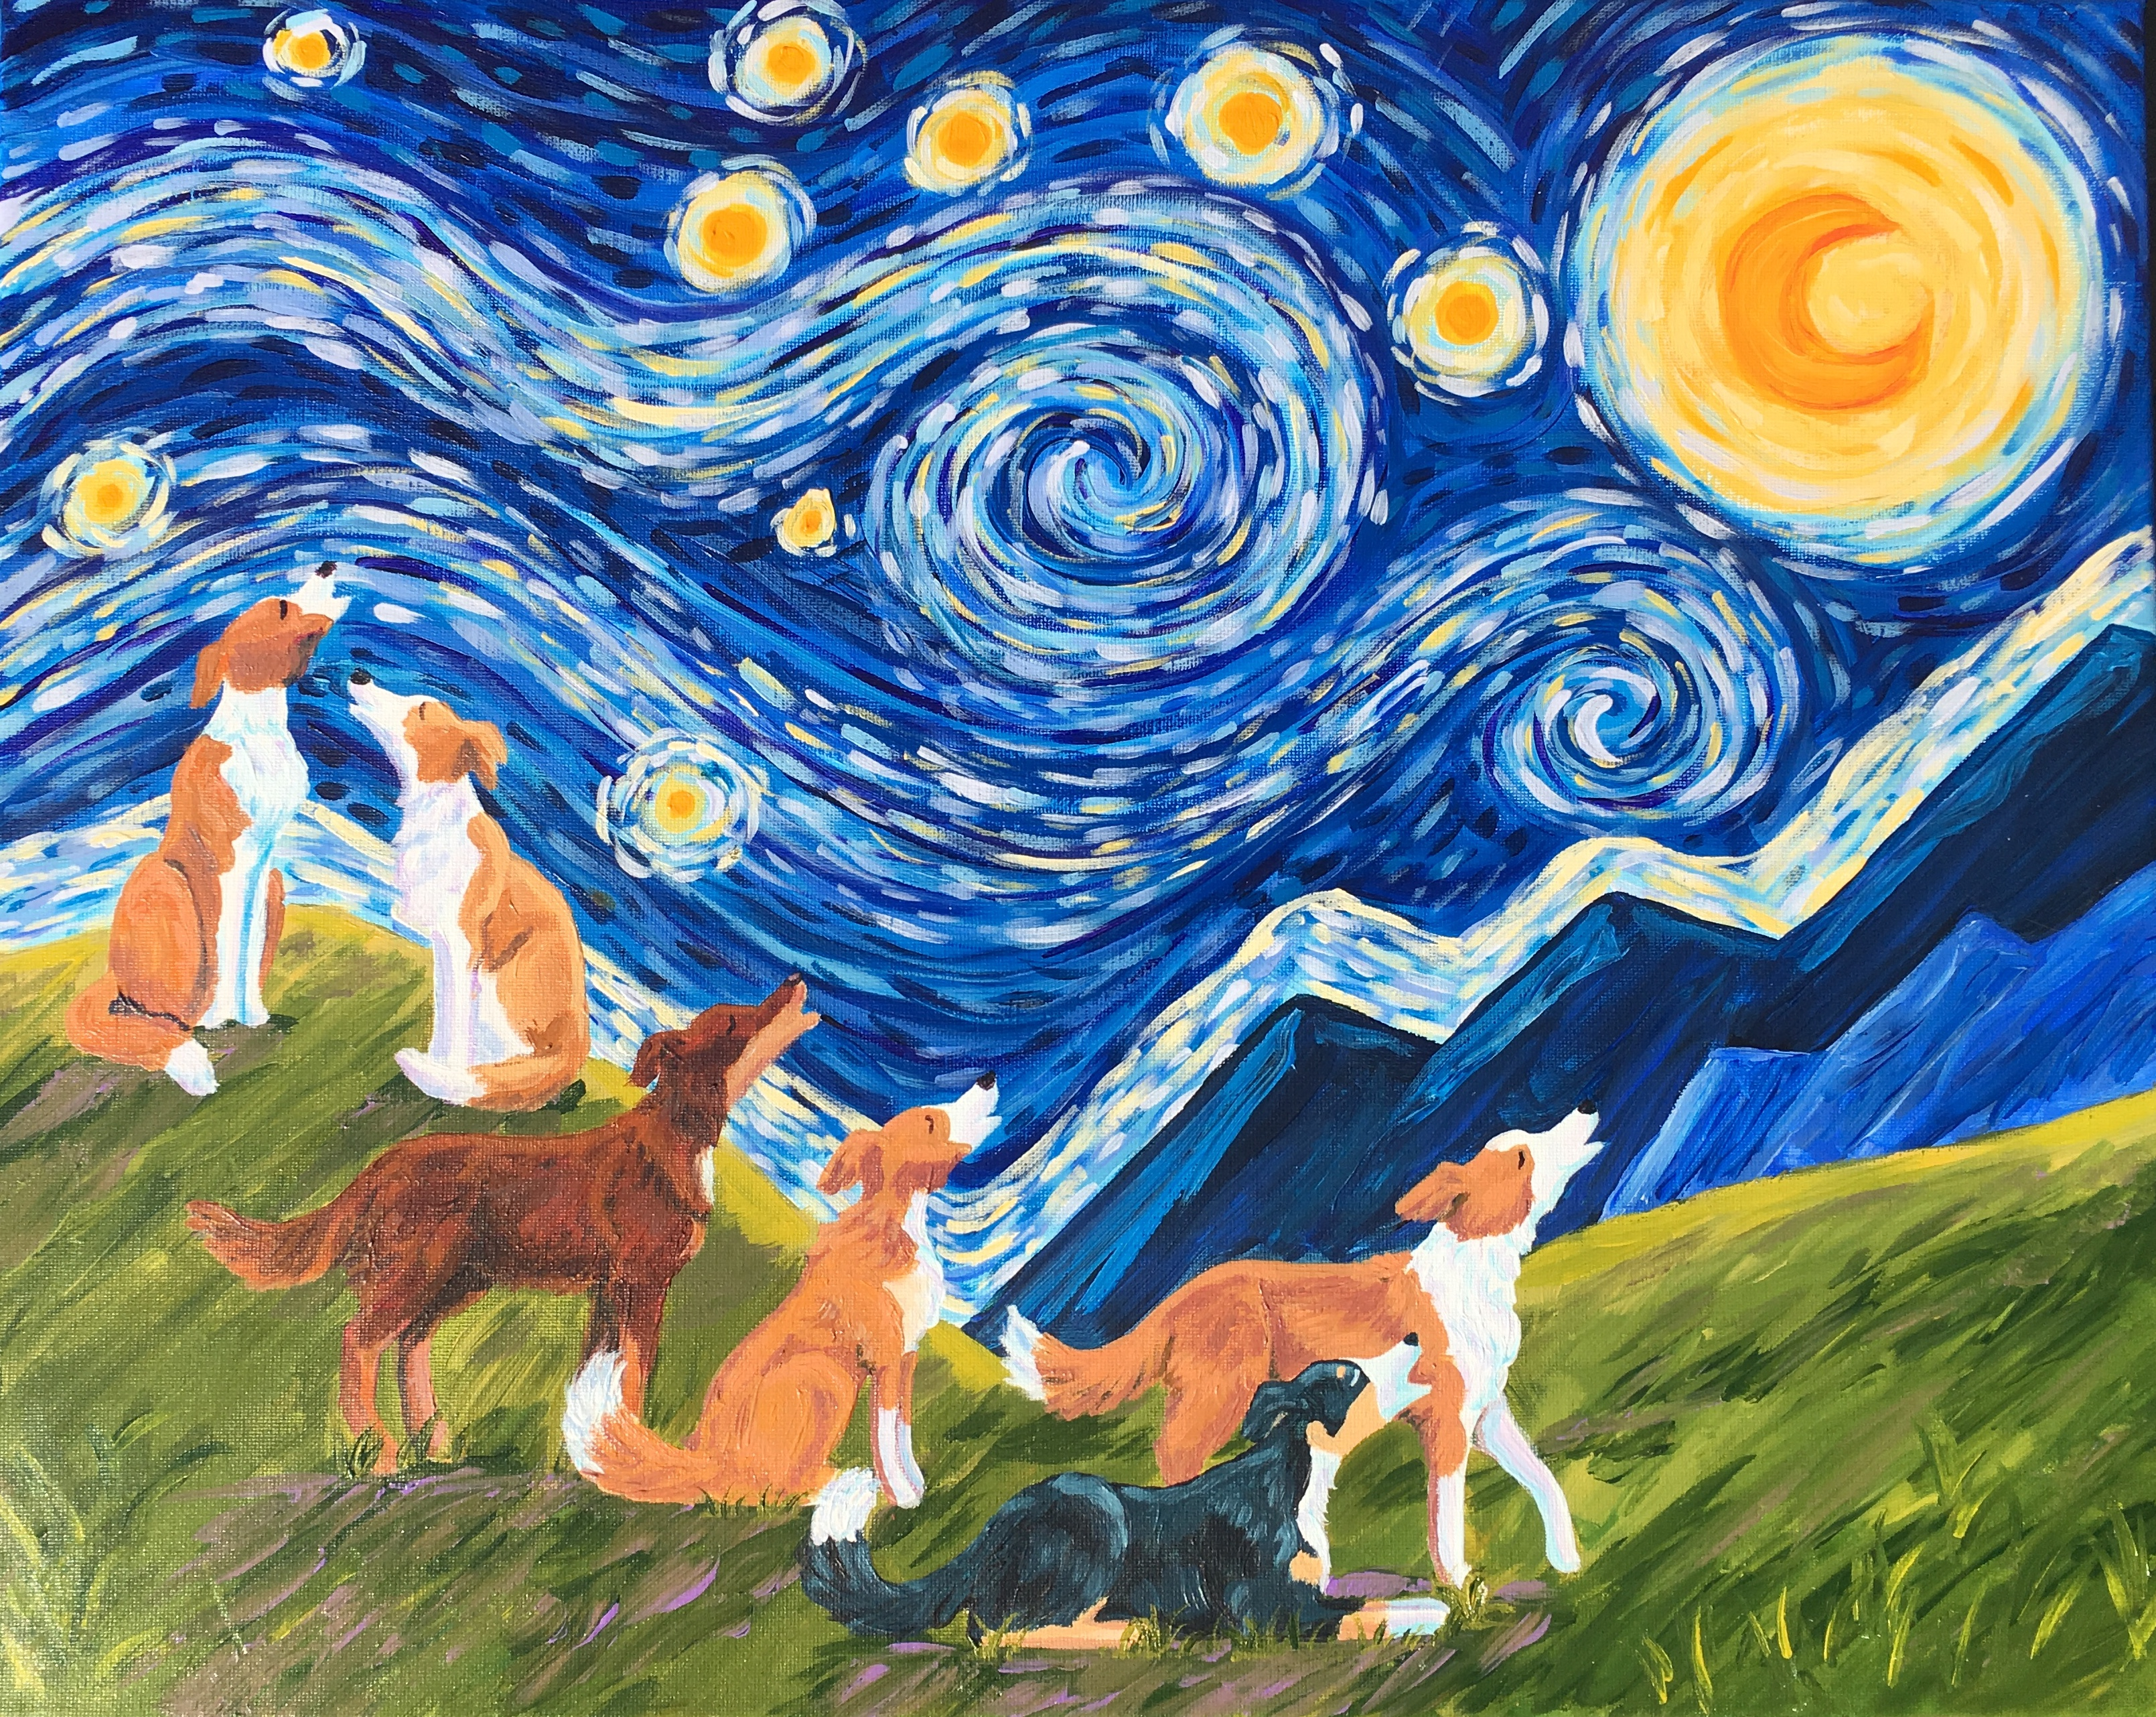 Johnson's Starry English Shepherds